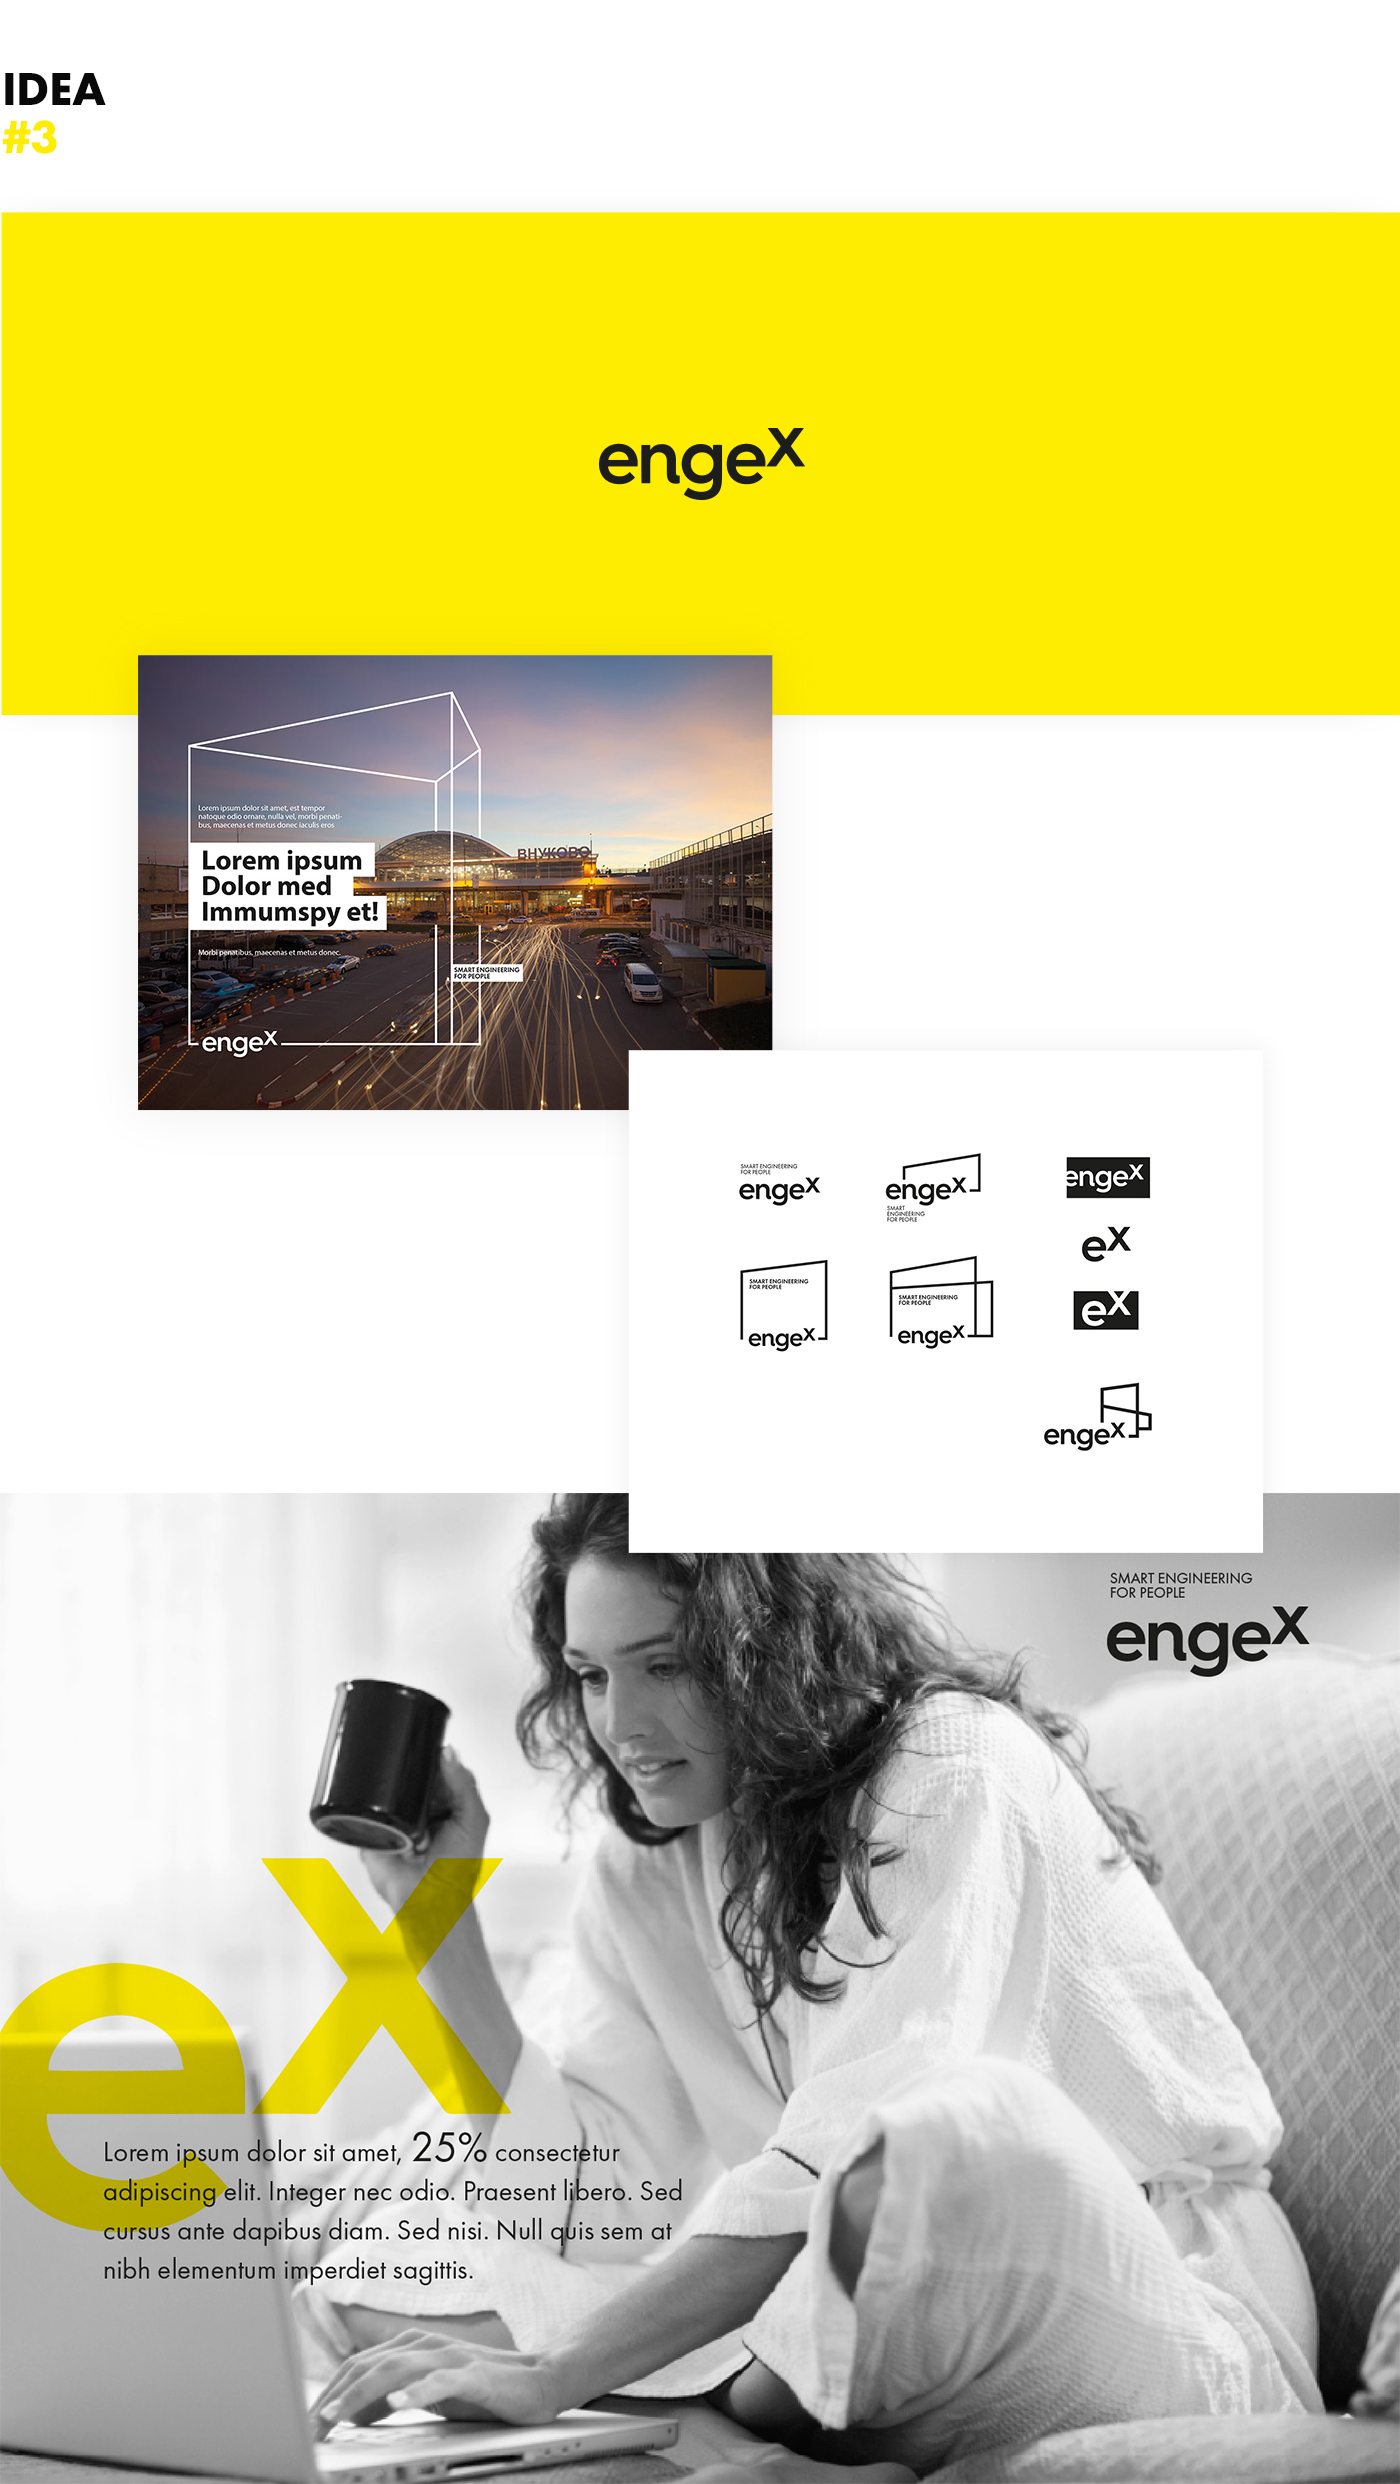 The third web design proposal for the Engex website